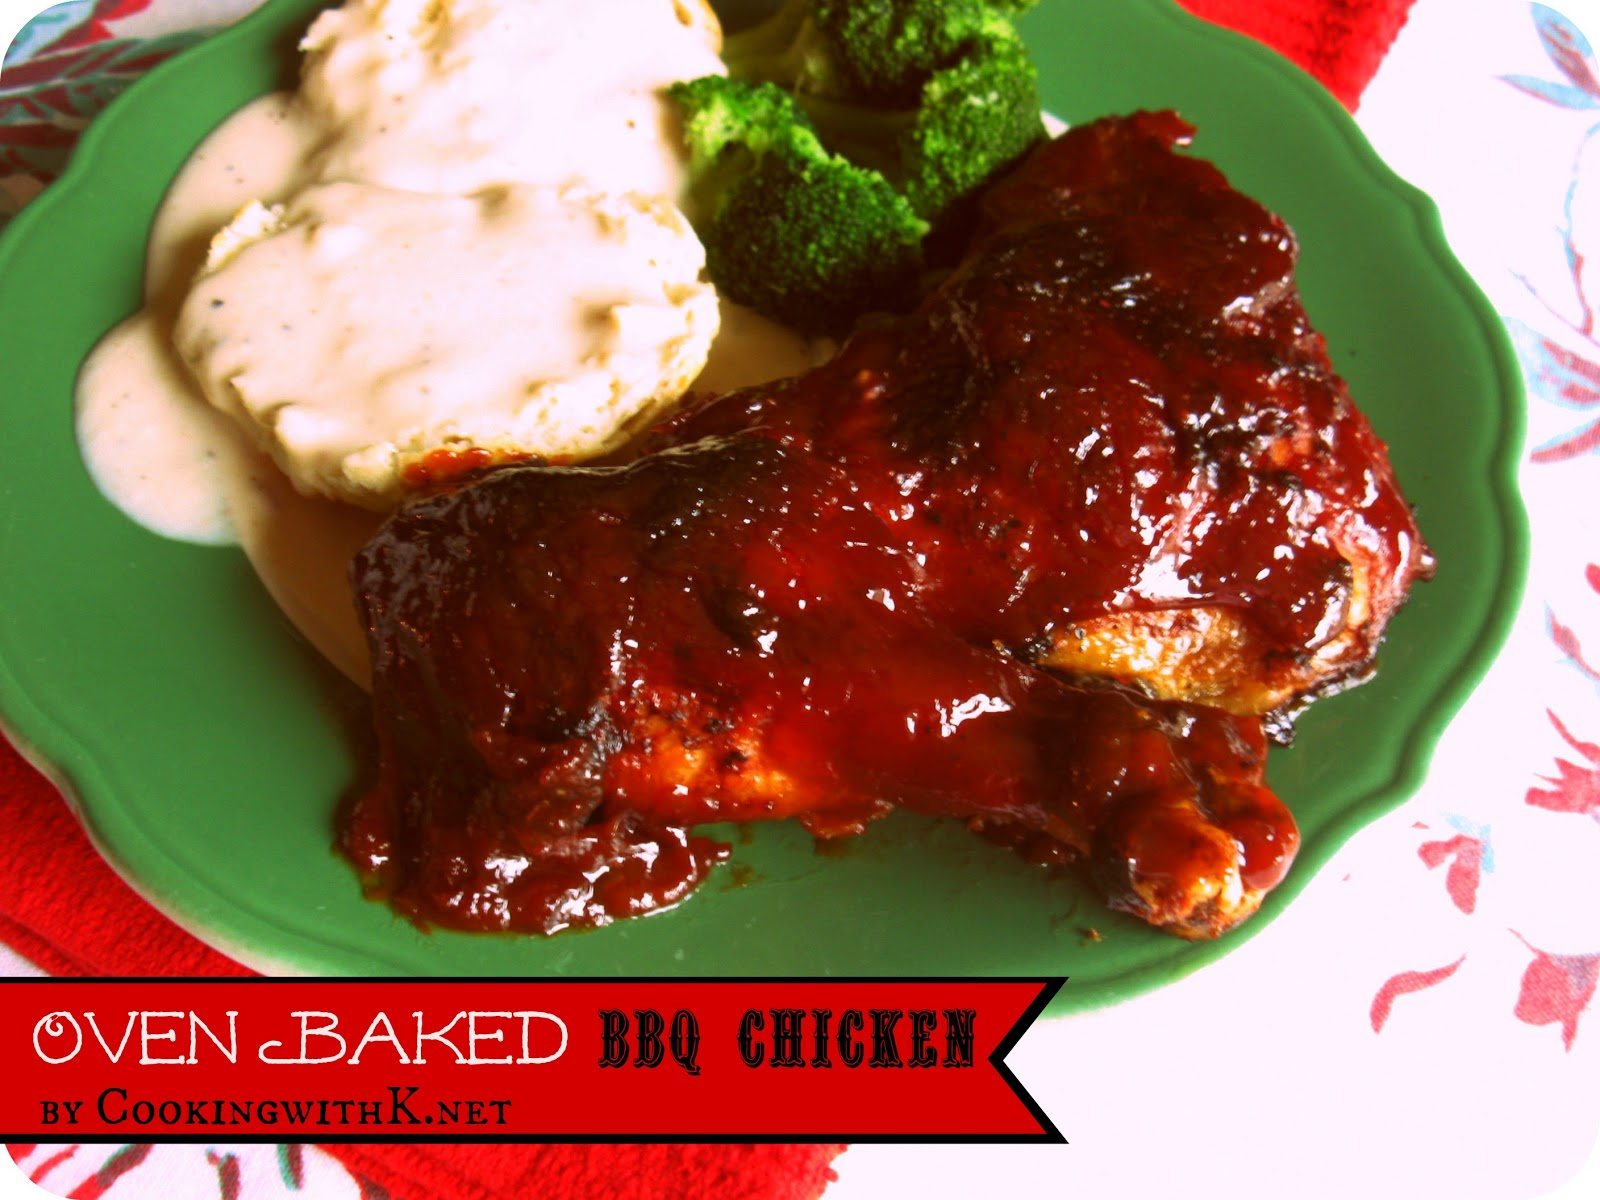 Cooking With K Oven Baked Bbq Chicken The Secret To Getting The